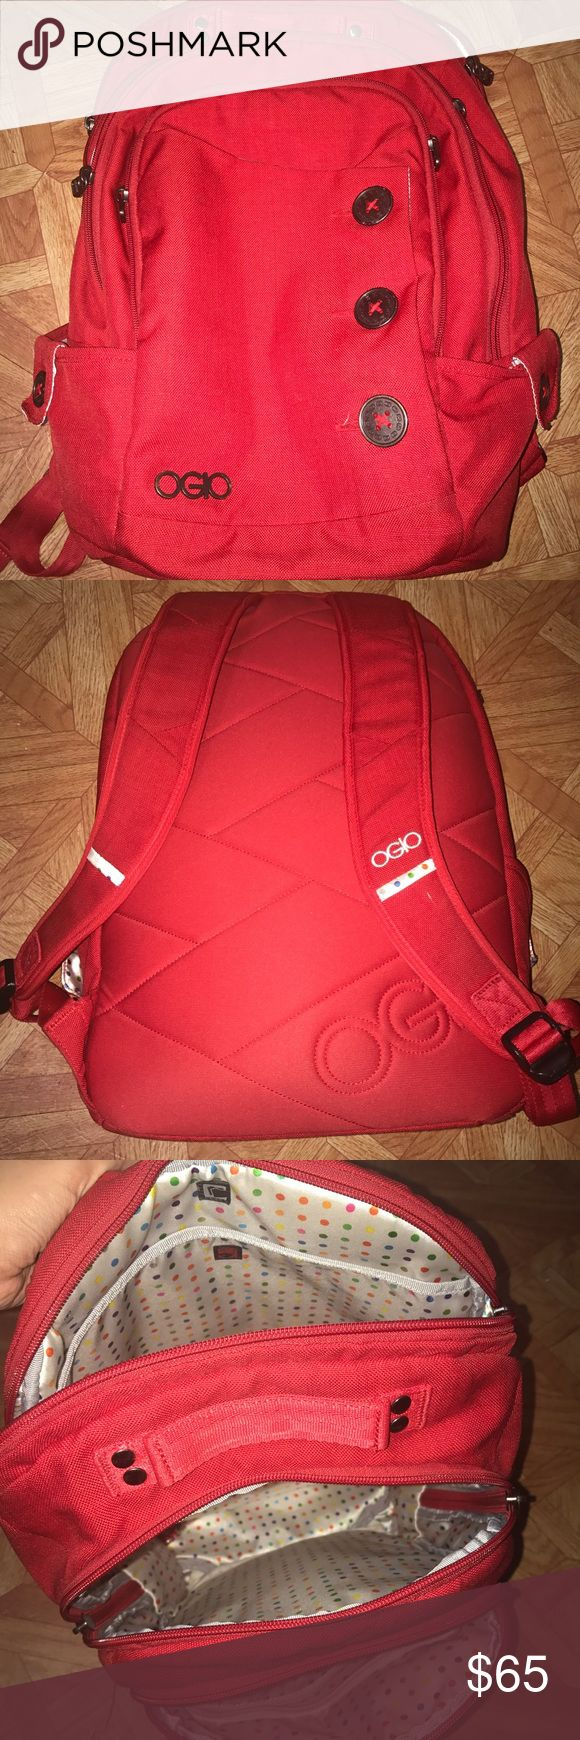 OGIO backpack! It is perfect for high school or college. Has a lot of space and a lot of pockets to keep everything organized! OGIO Bags Backpacks